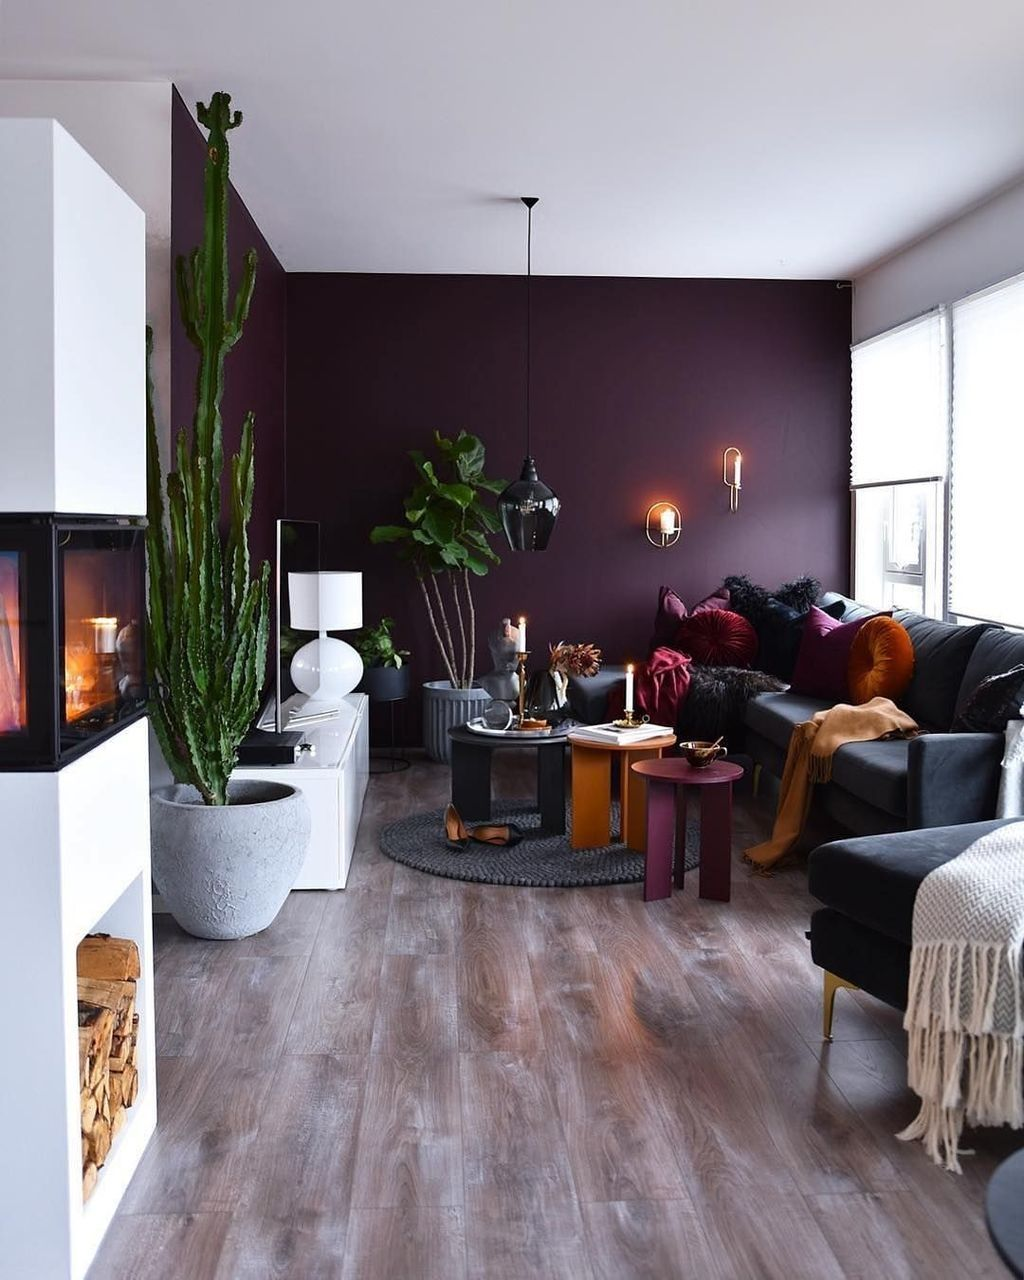 20 luxurious diy accent wall interior ideas for on living room colors for walls id=75048